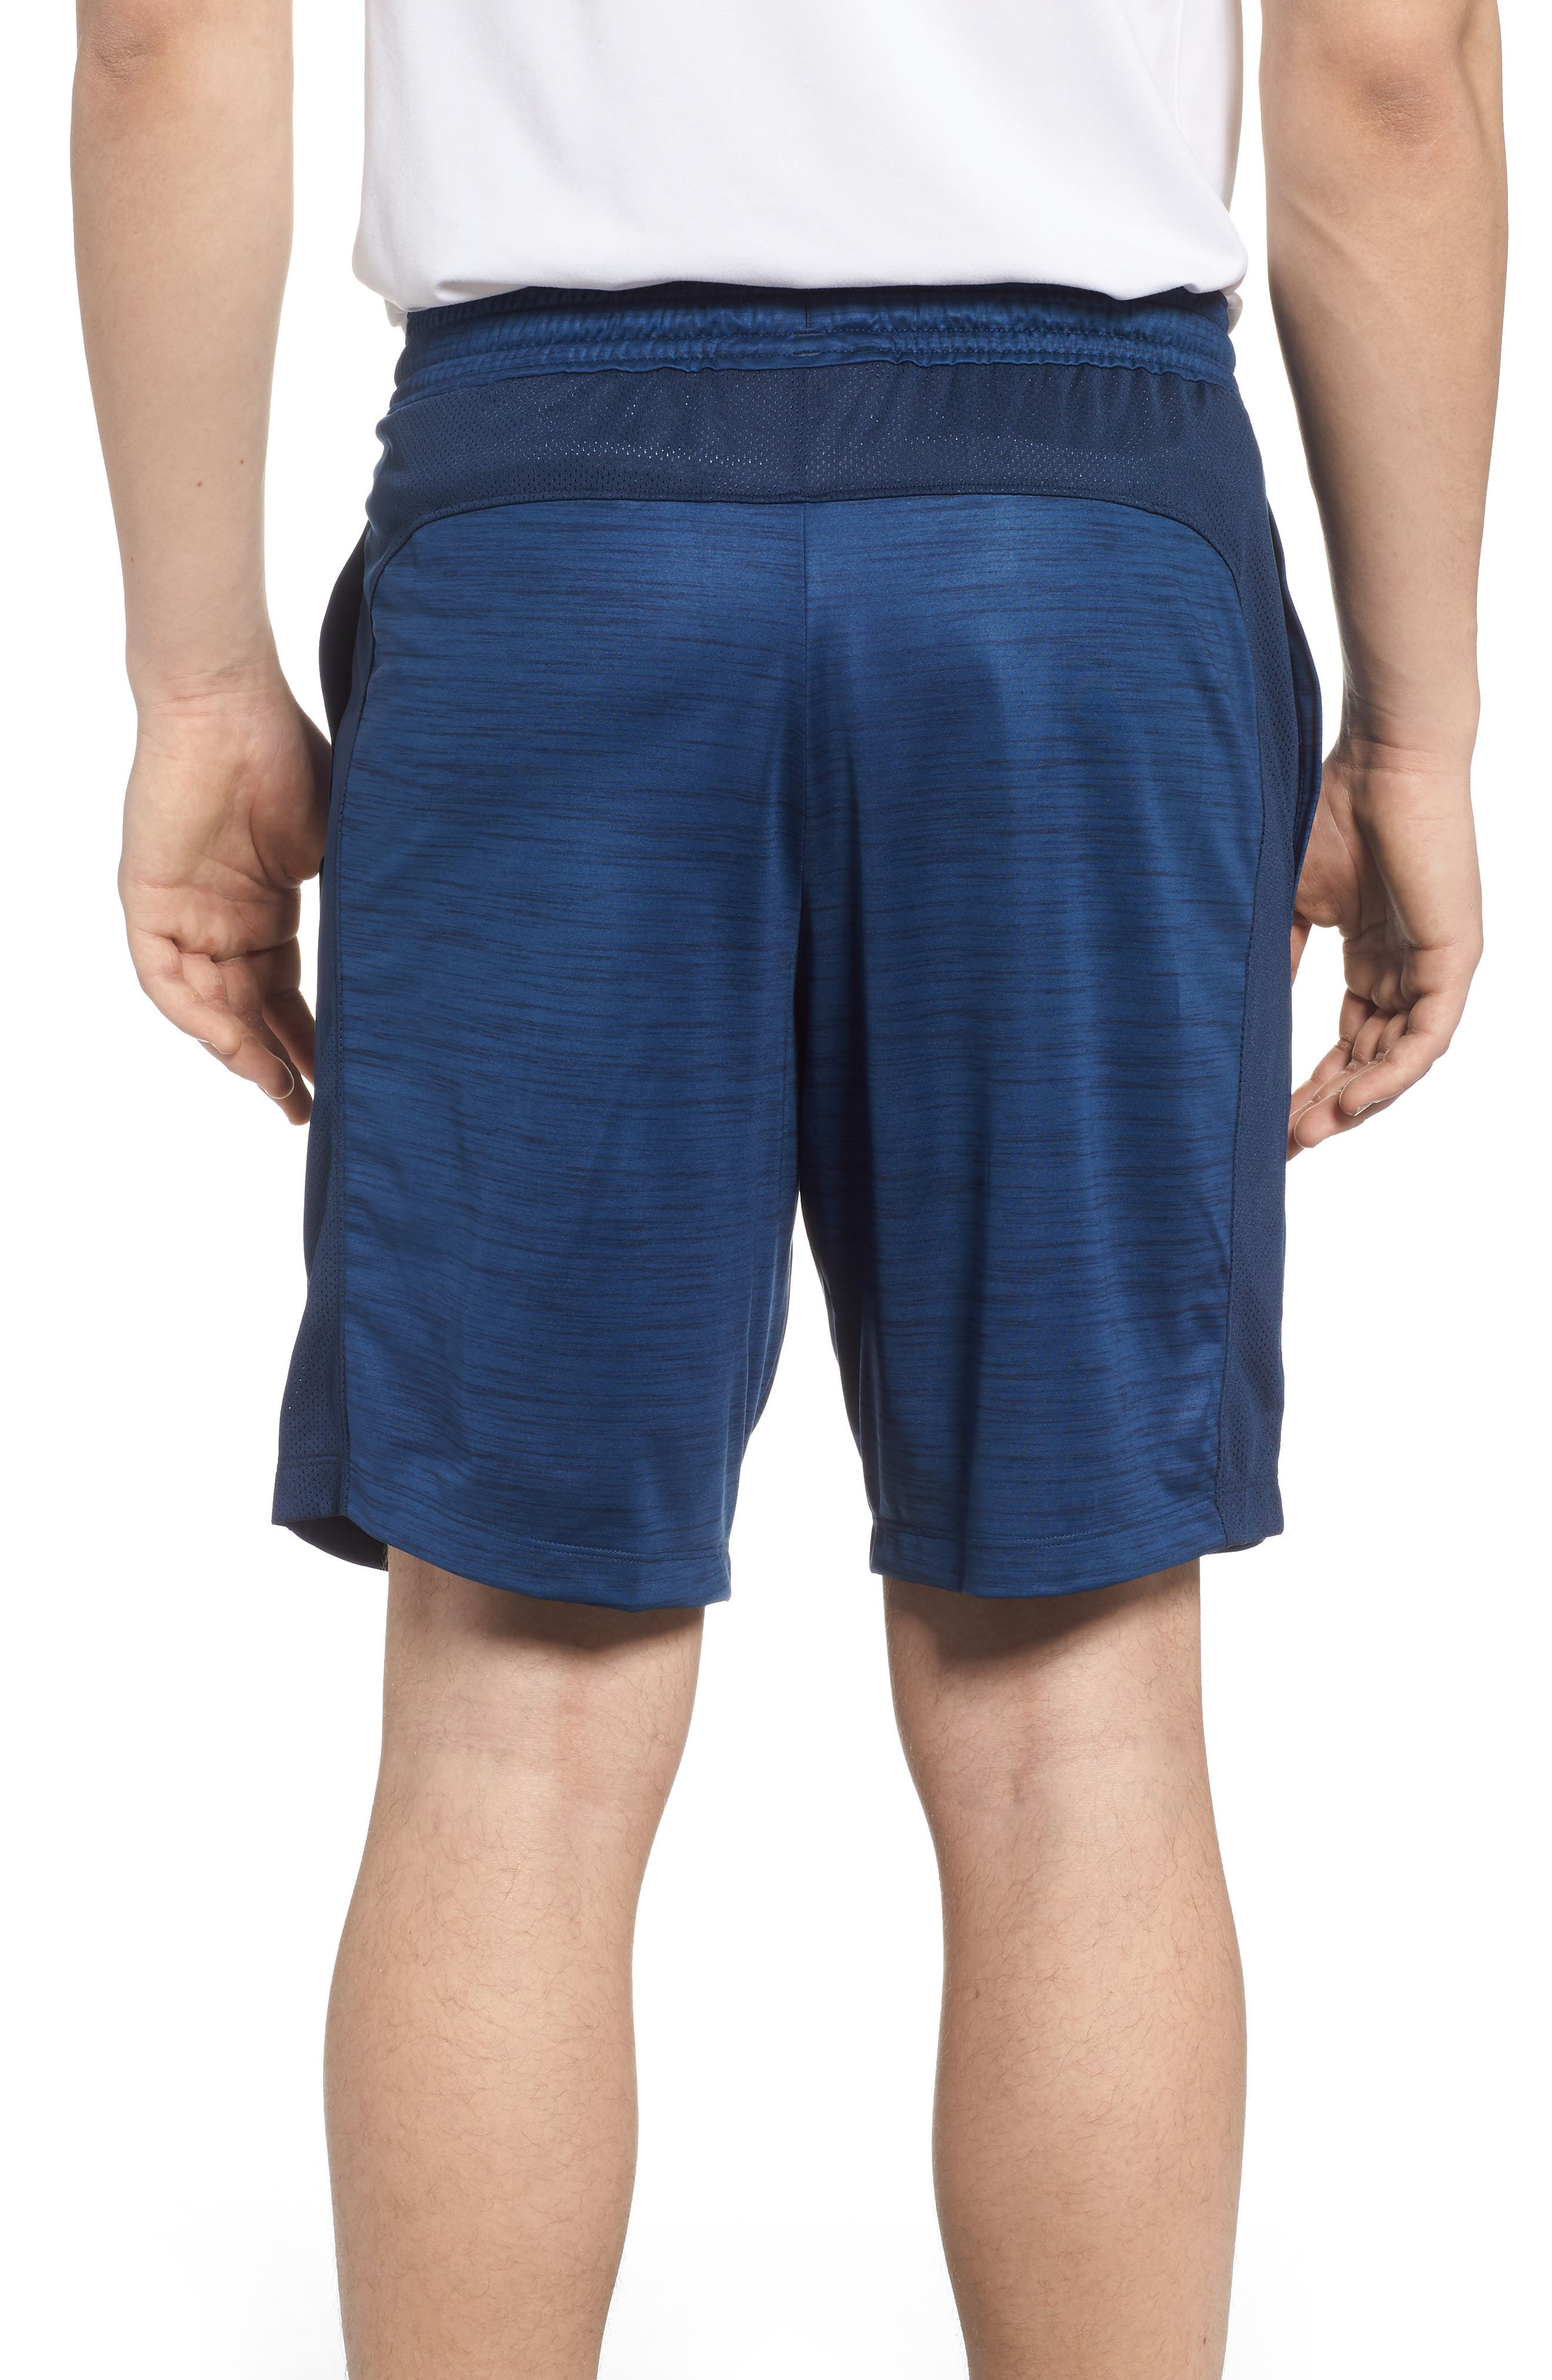 MK1 Twist Shorts,                             Alternate thumbnail 2, color,                             Academy/ Stealth Greh